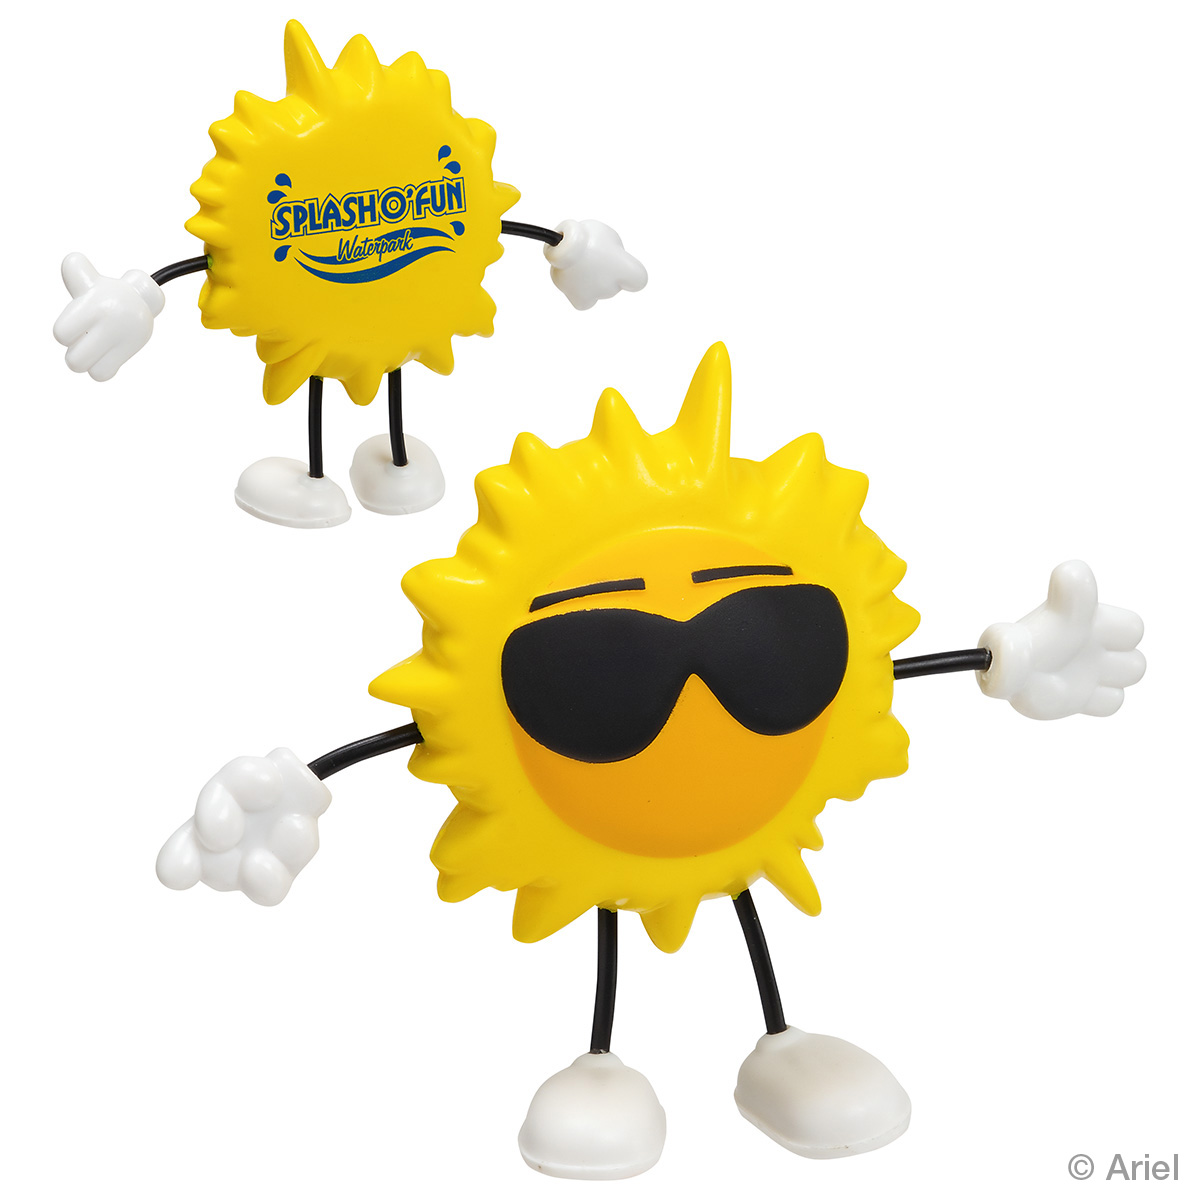 Cool Sun Stress Reliever Figure, LCH-CS01, 1 Colour Imprint